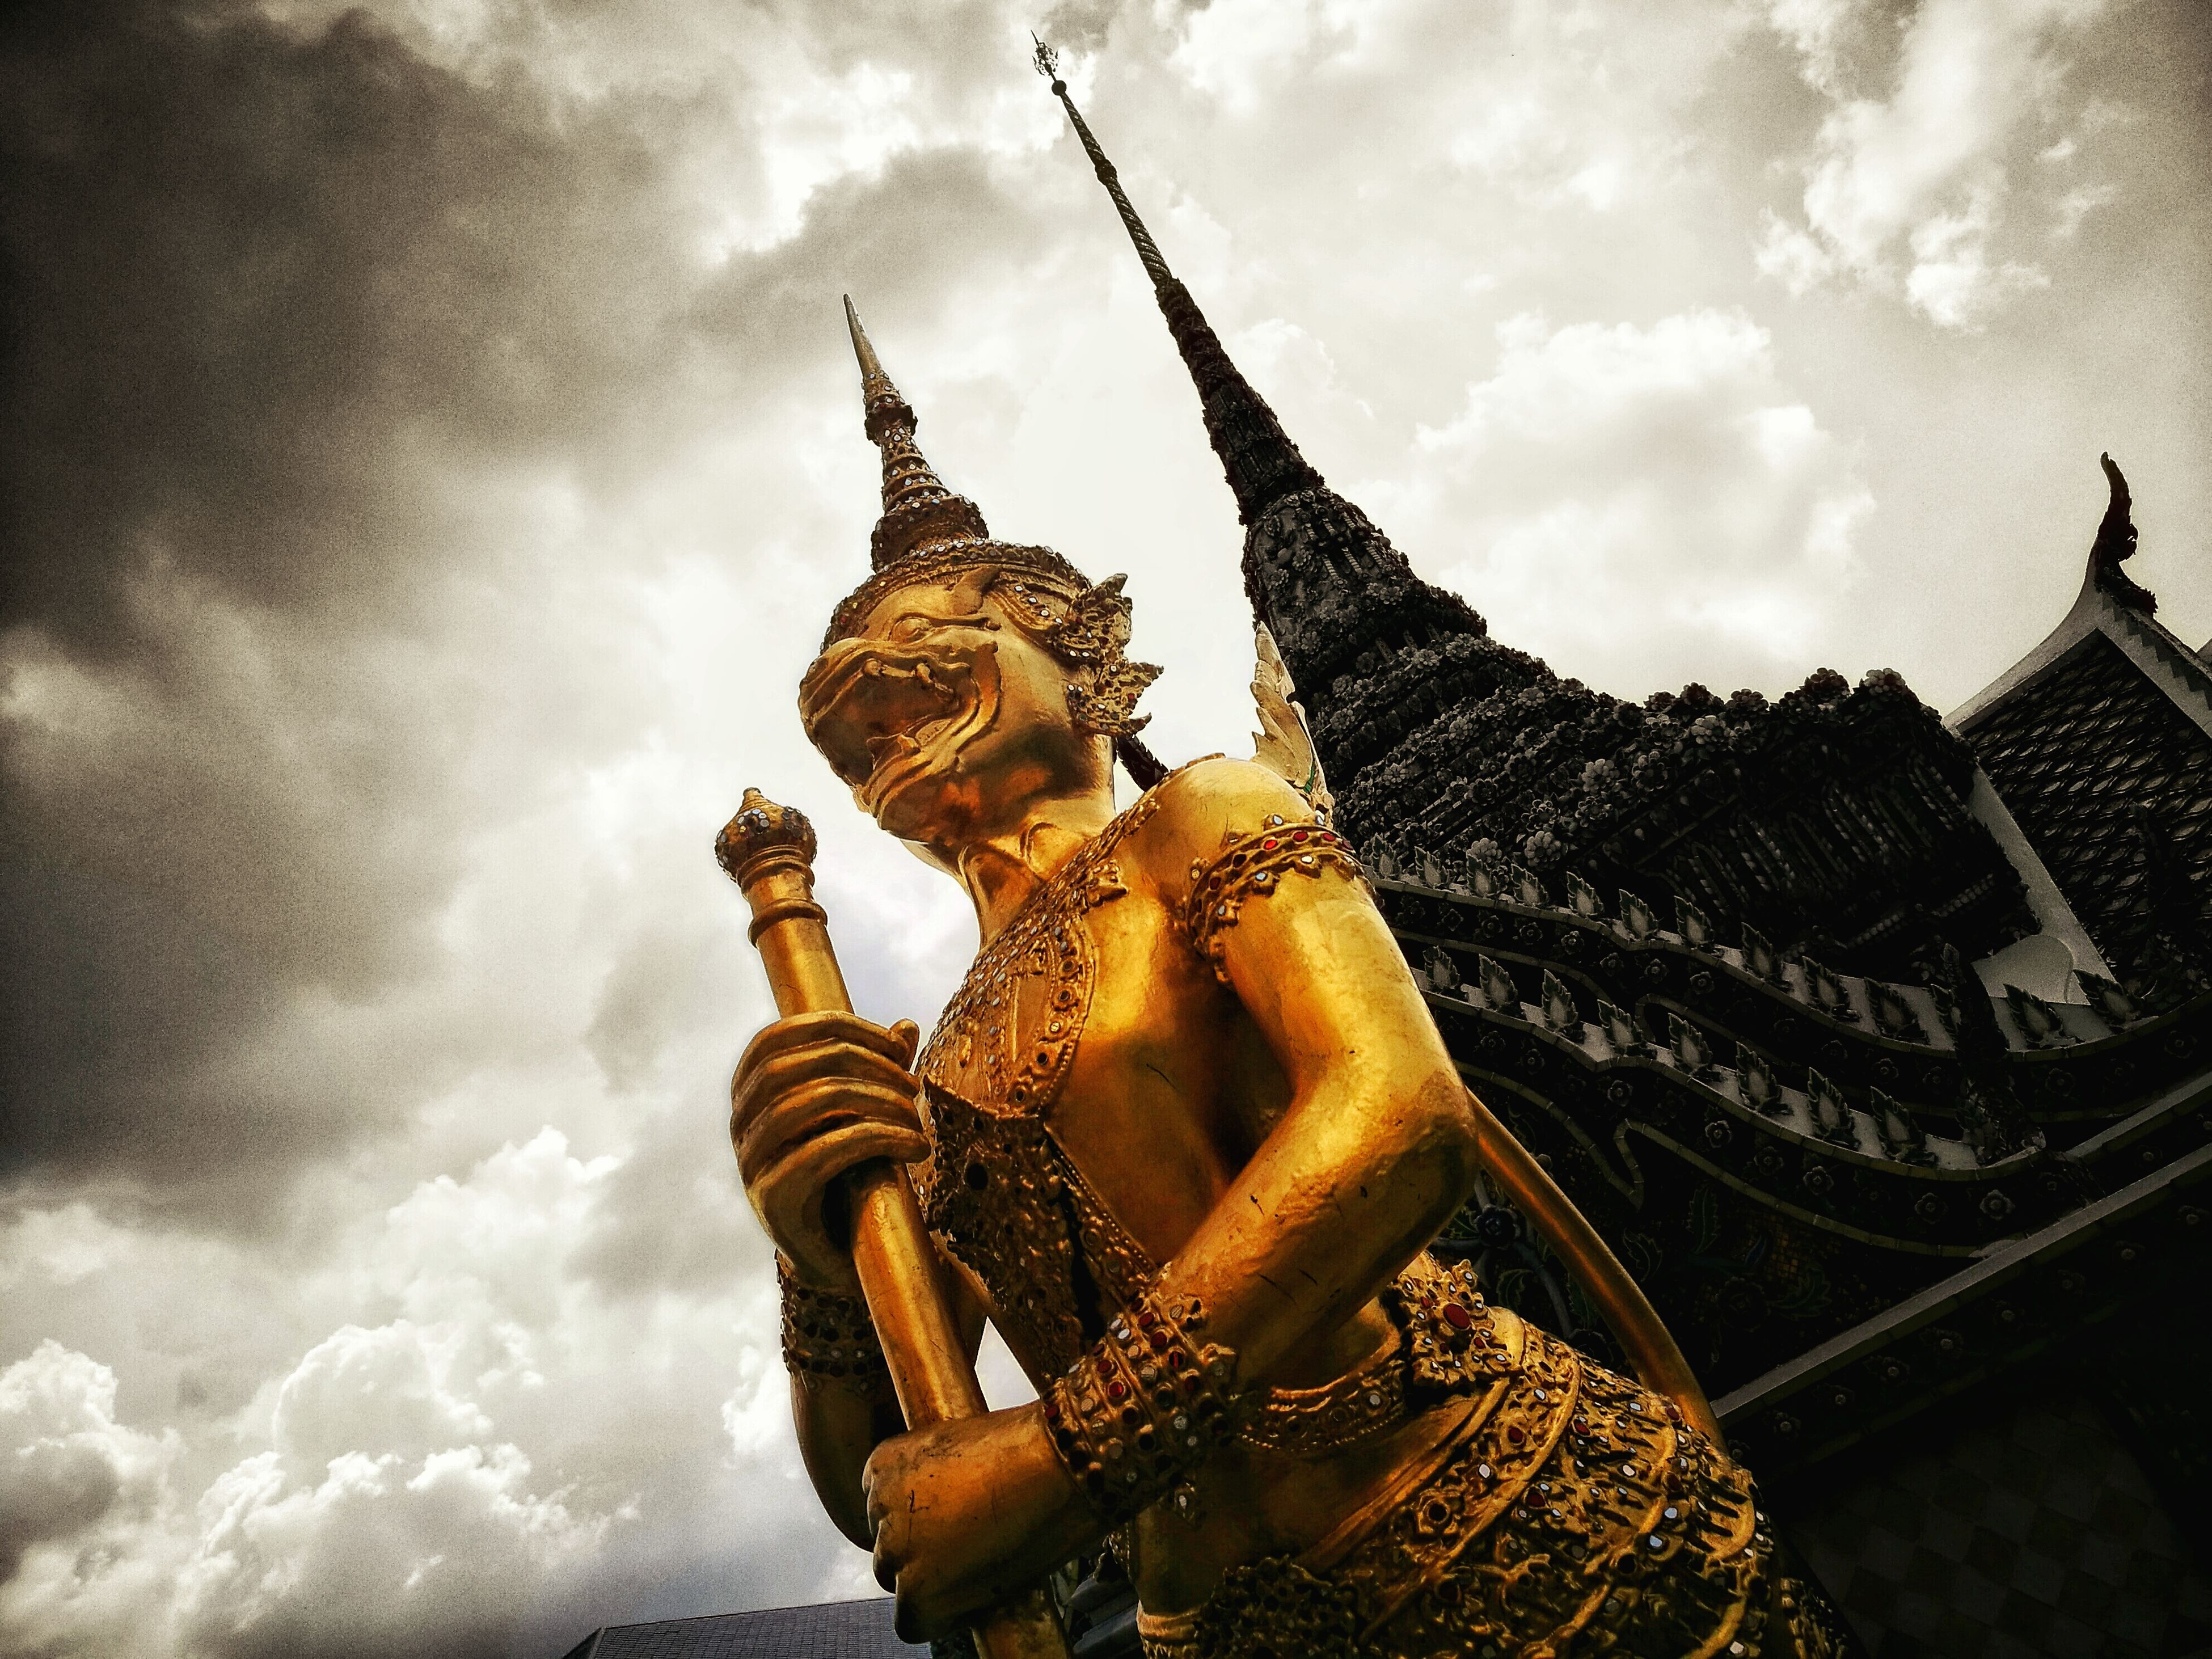 spirituality, religion, place of worship, gold colored, architecture, statue, human representation, sky, low angle view, built structure, sculpture, building exterior, cloud, cloud - sky, cloudy, gold, outdoors, church, golden, creativity, day, sunbeam, famous place, spire, tourism